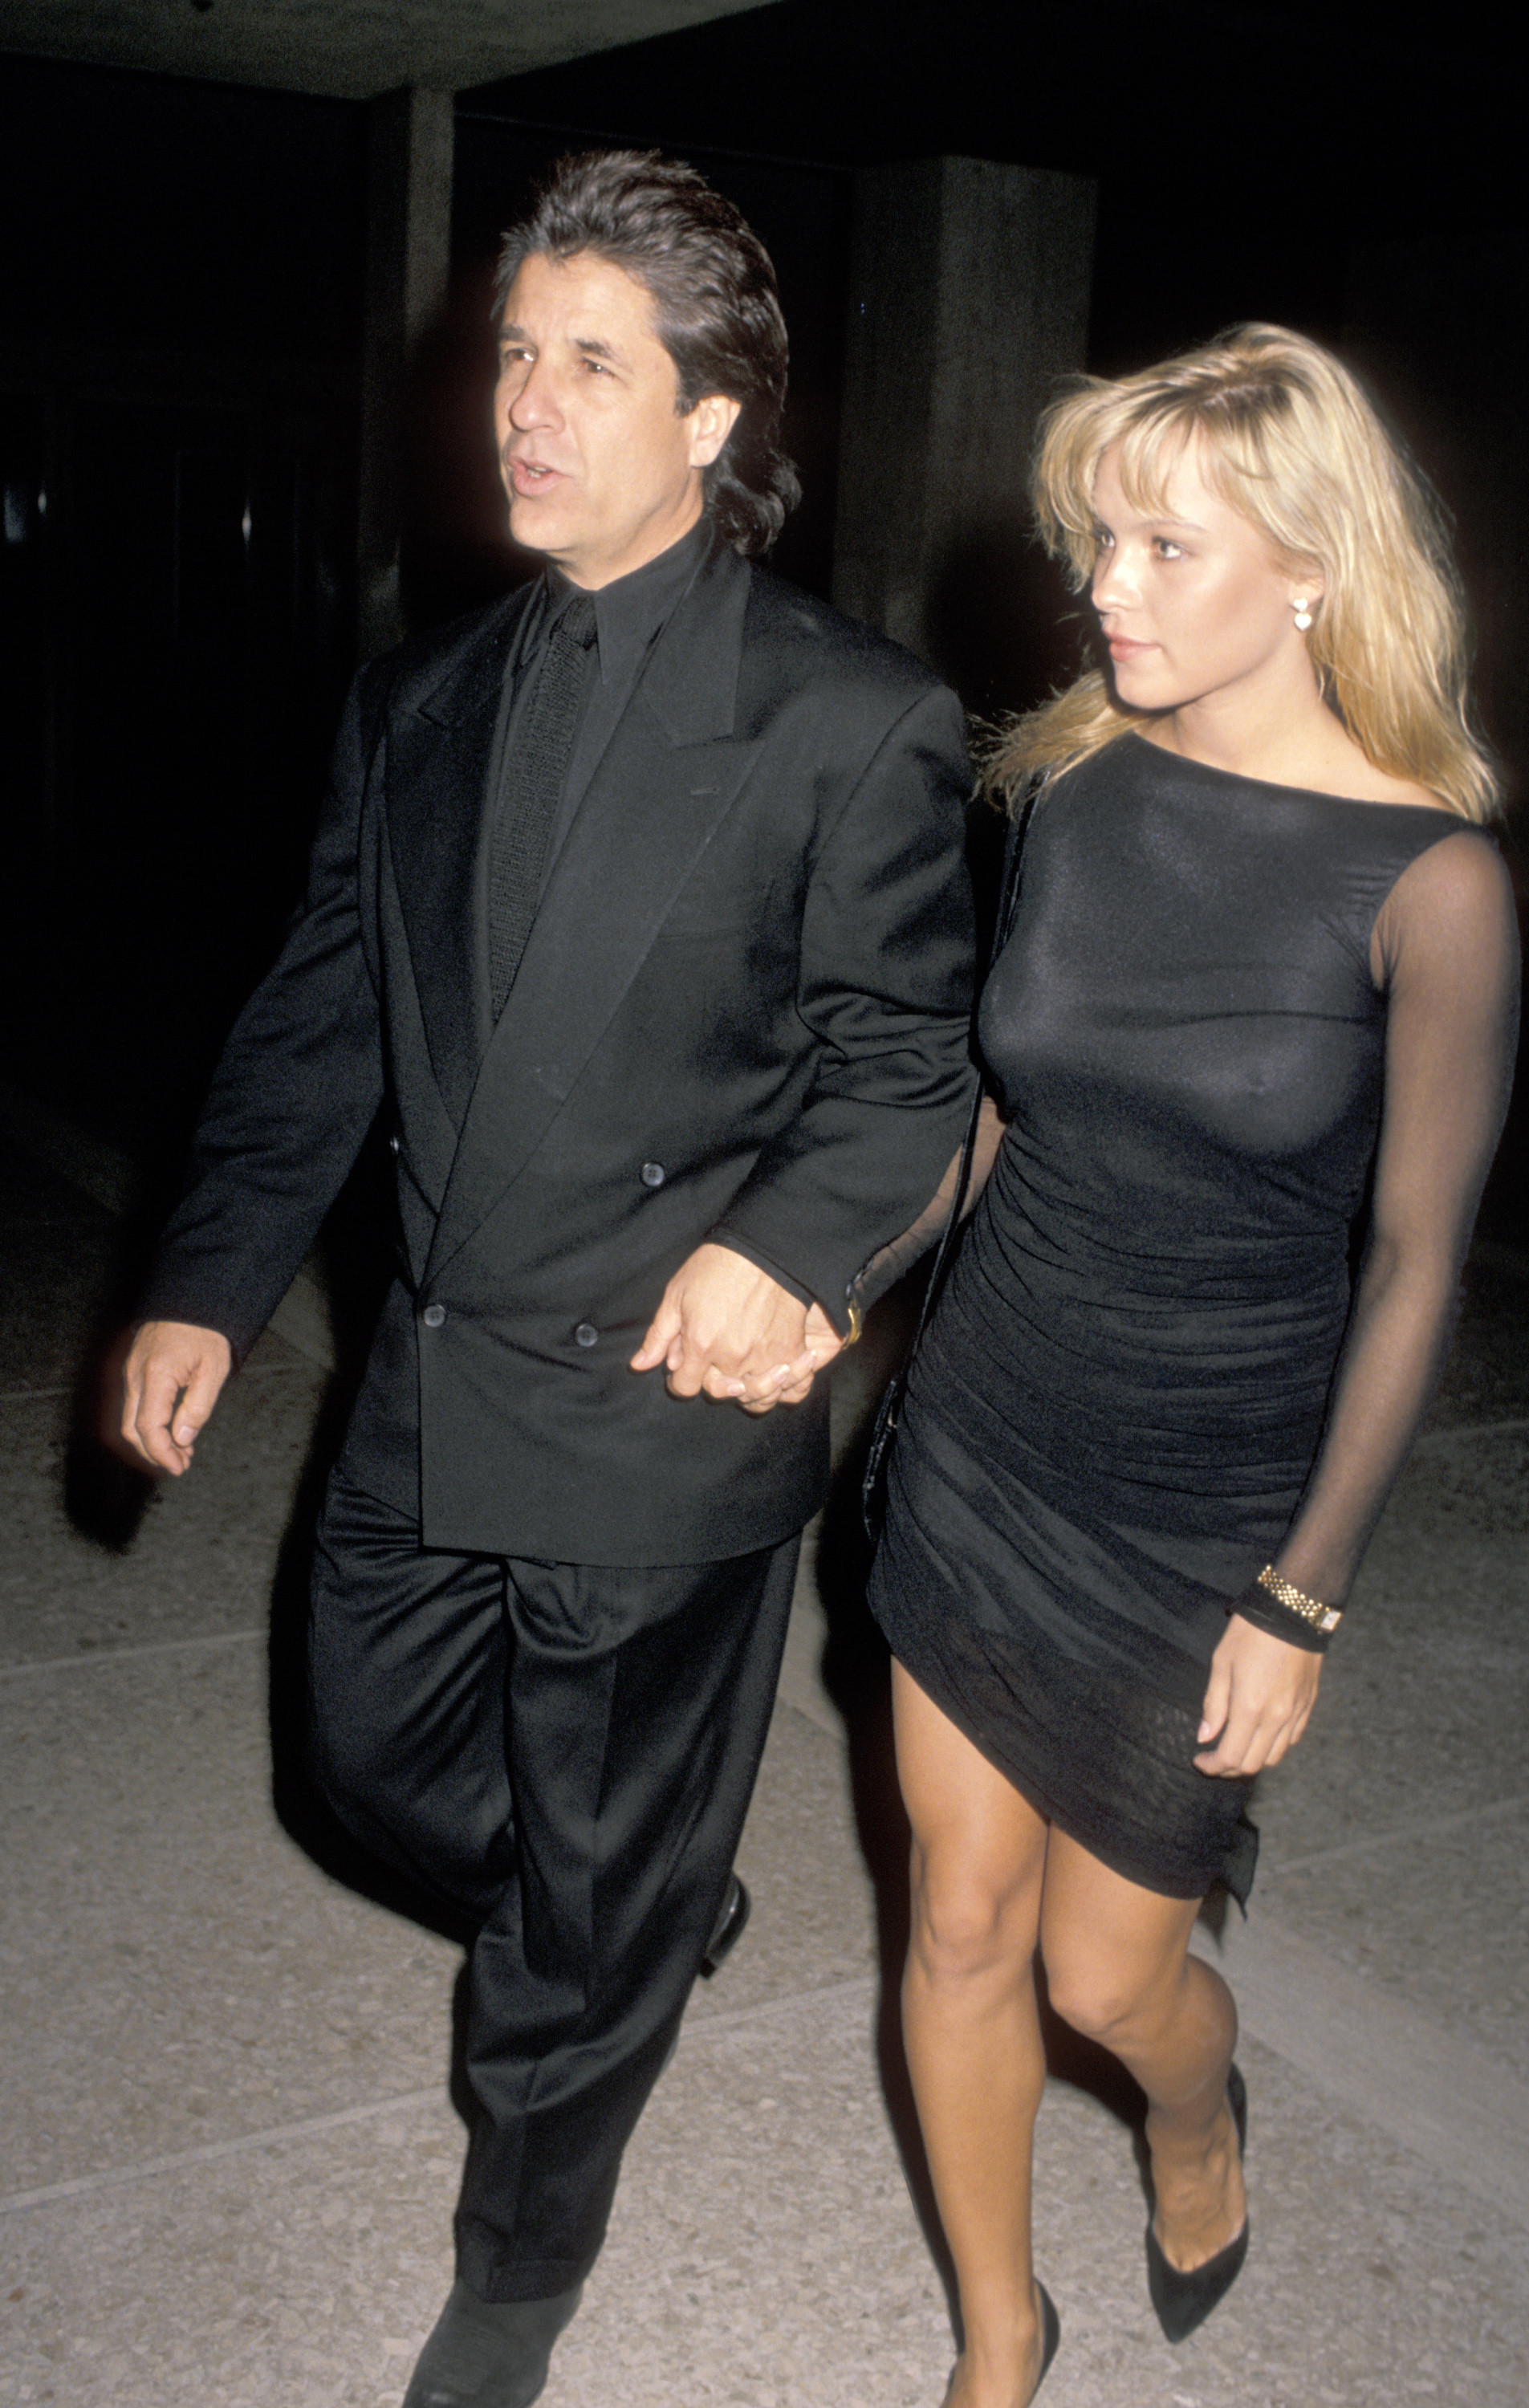 Pamela Anderson's Affairs With PHOTOS: Know Whom She Has Dated Before 1